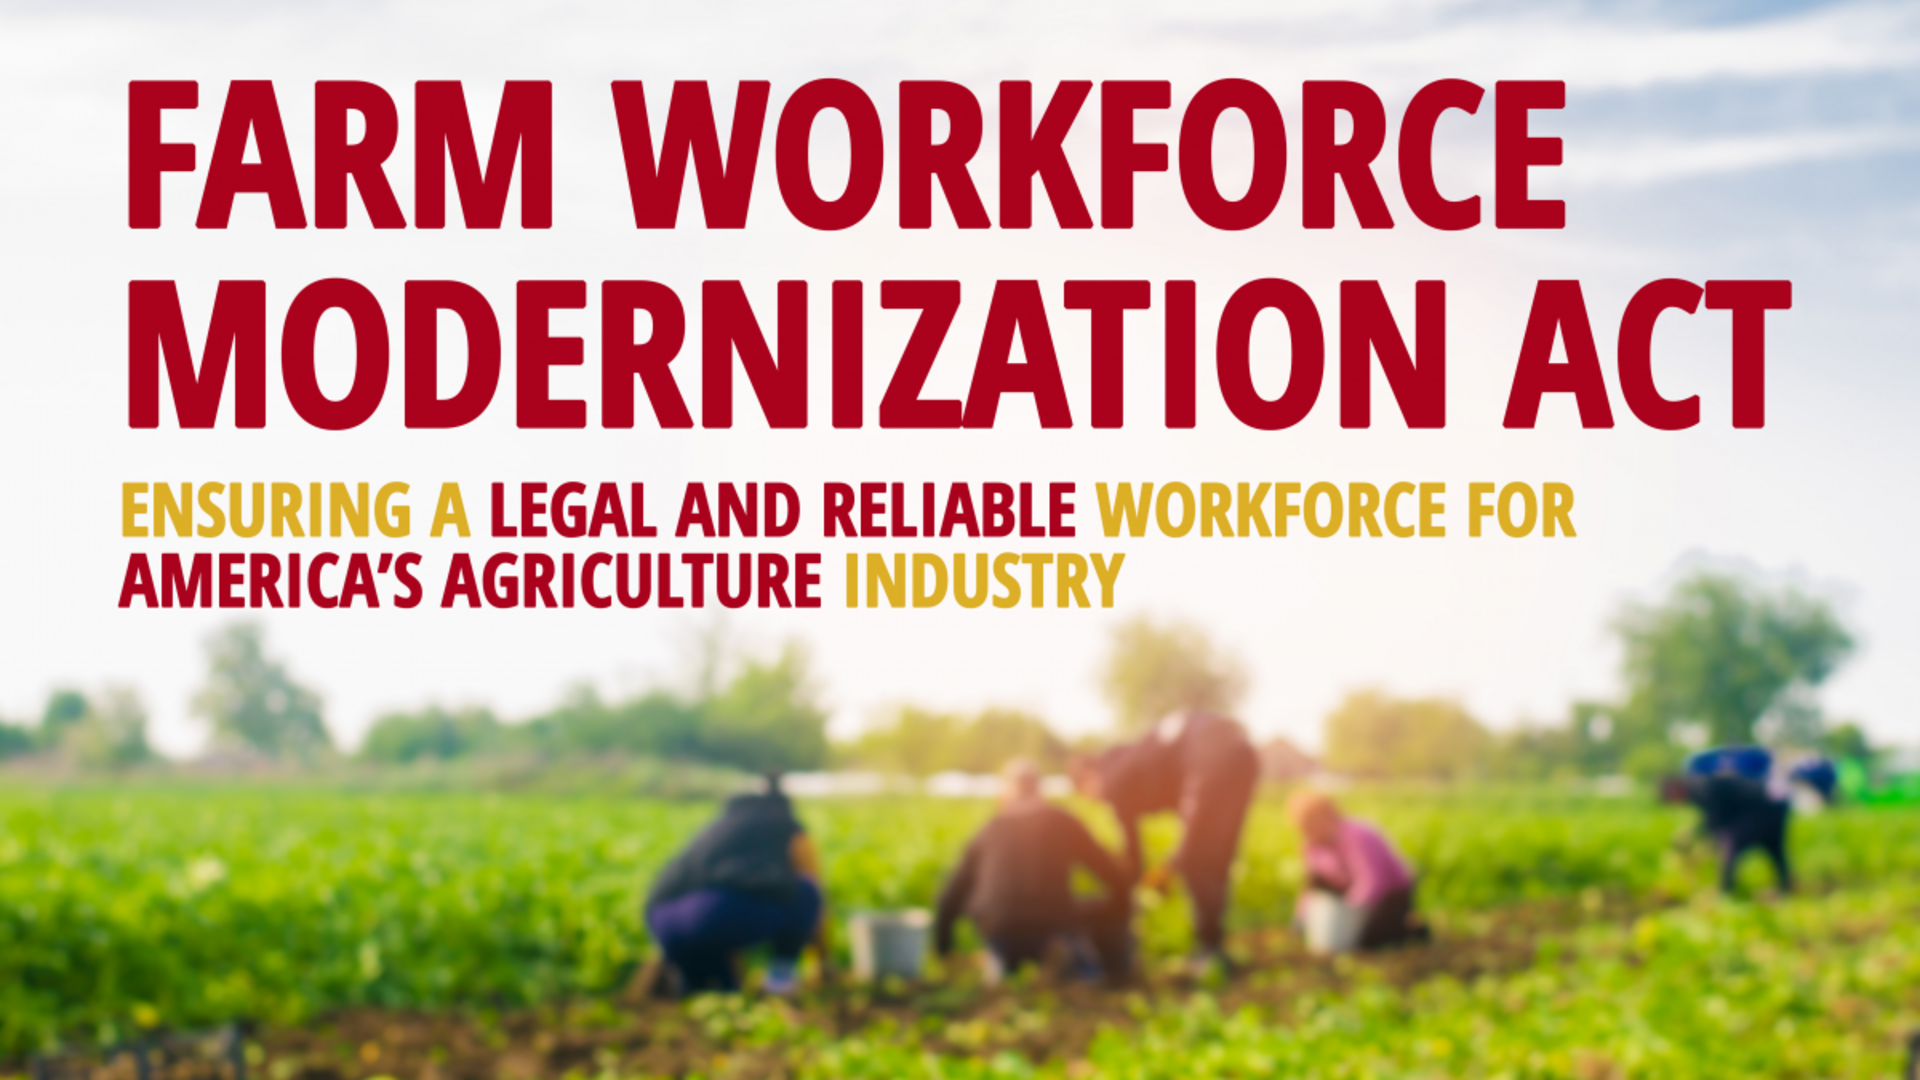 Farm Workforce Modernization Act Updt Pt 2